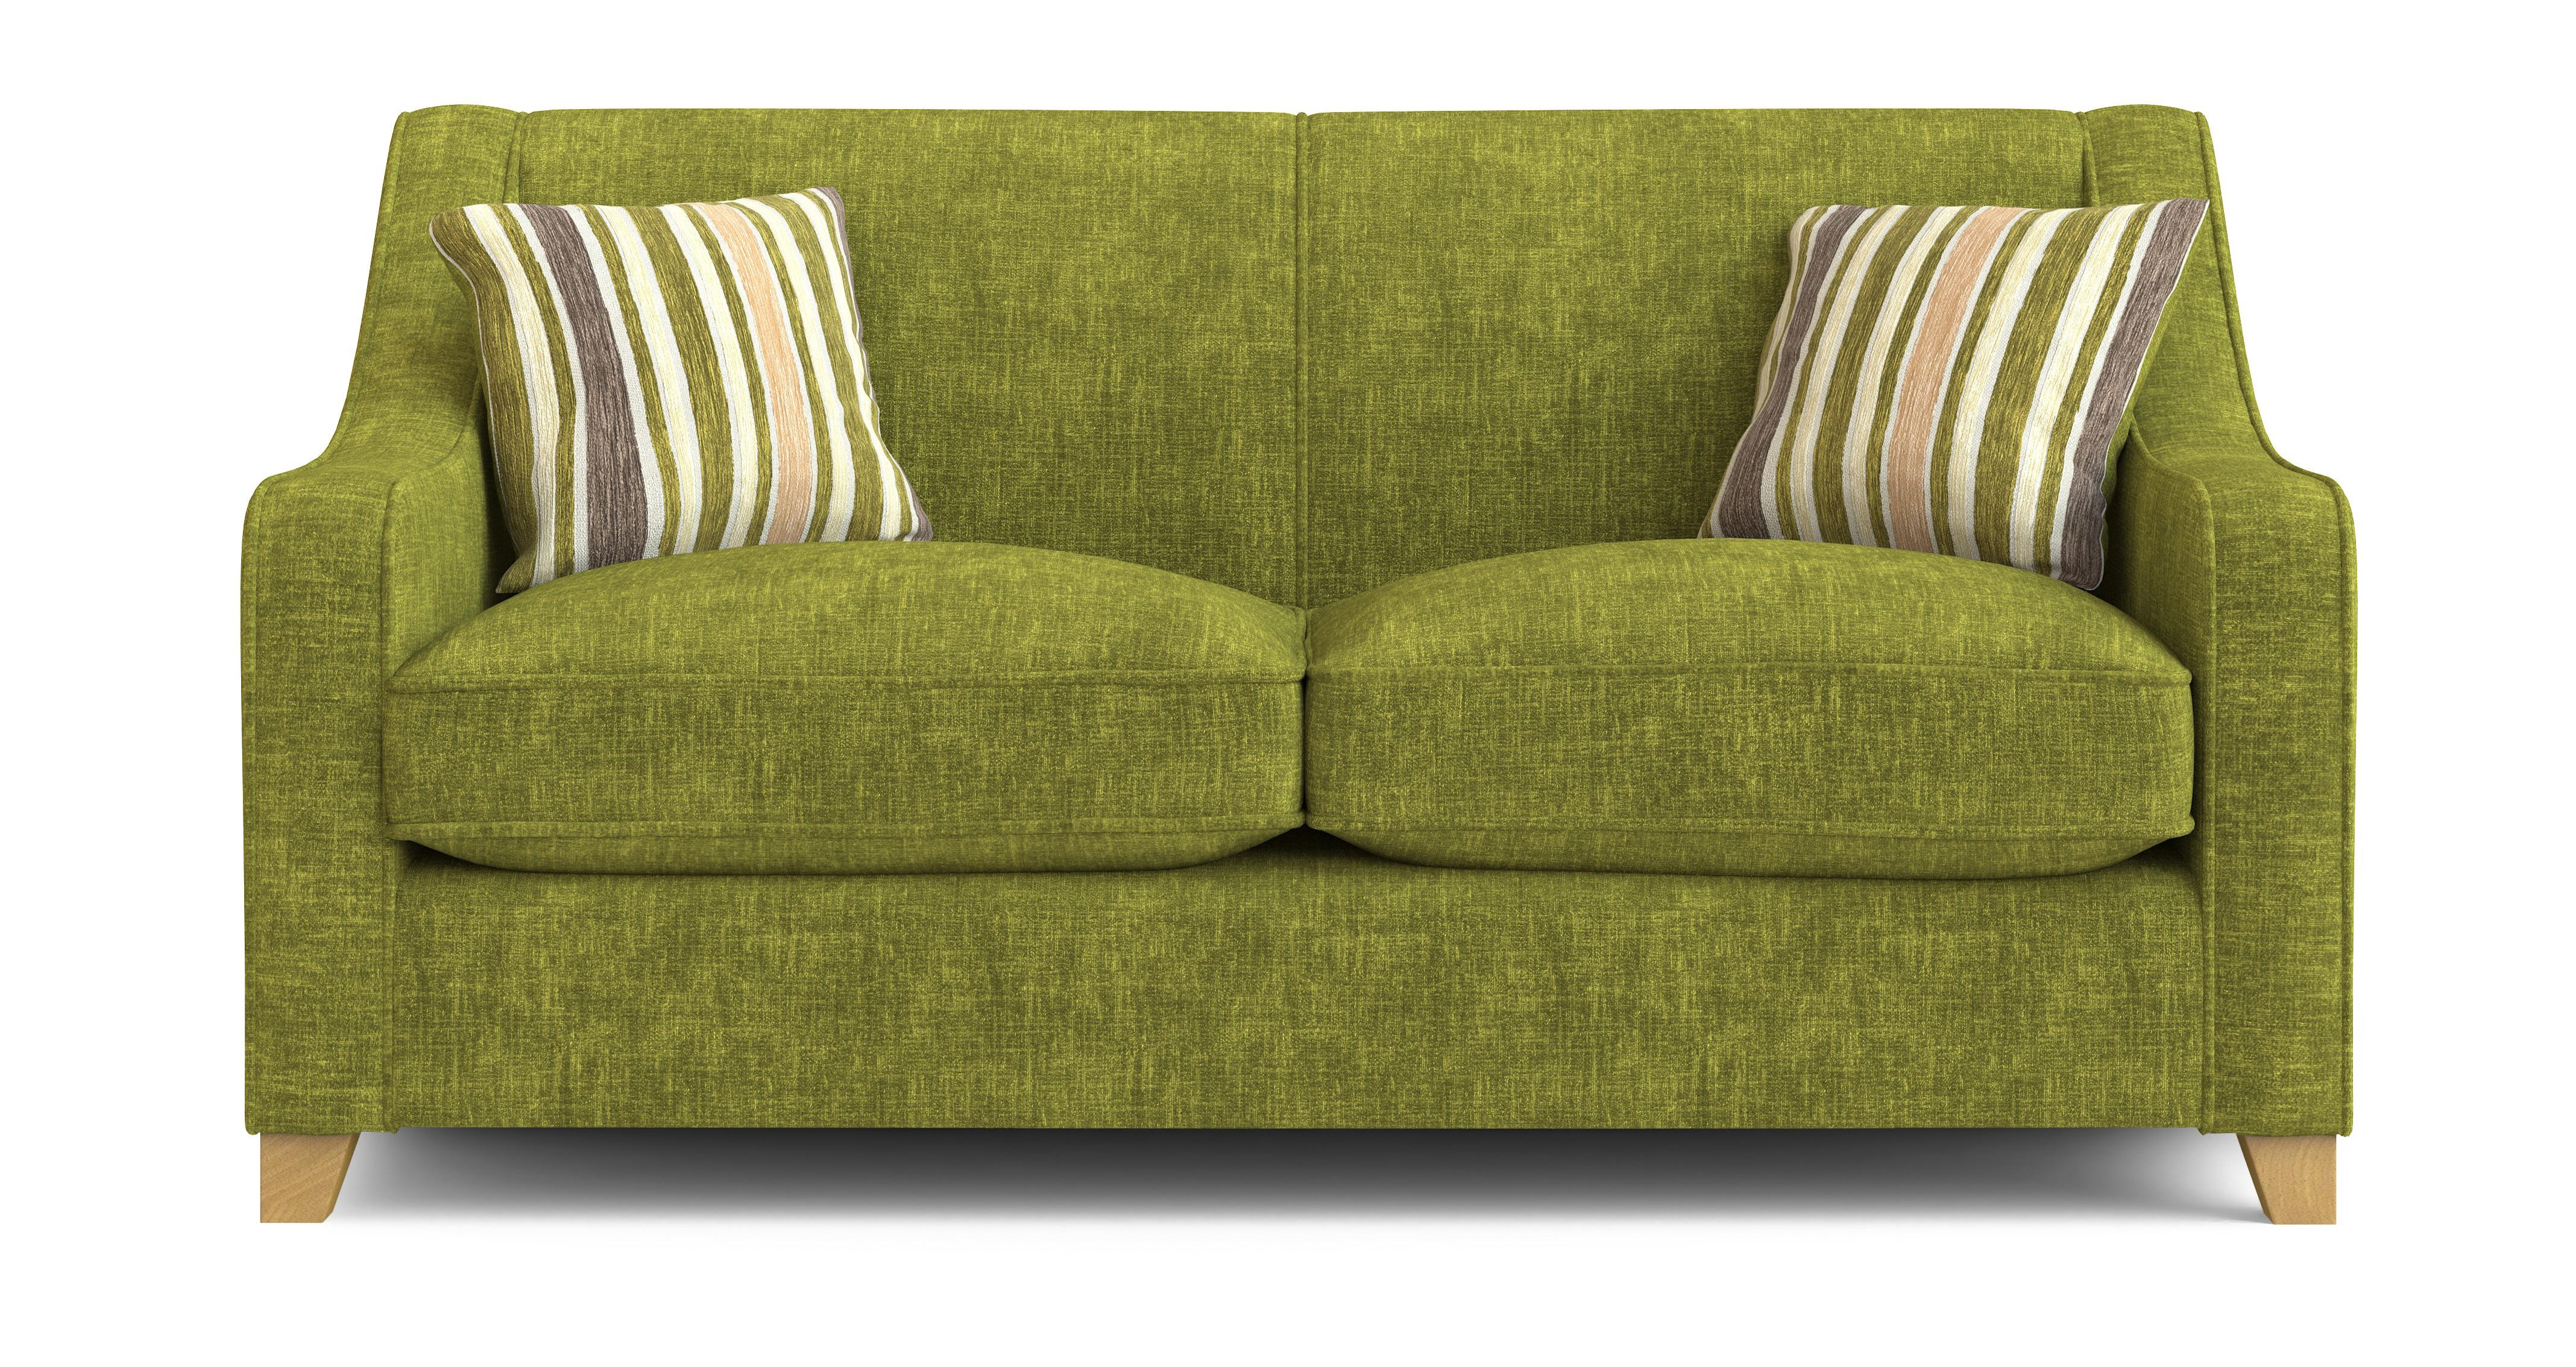 Dfs Rachel Lime Green Fabric 2 Seater Sofa Bed Ebay